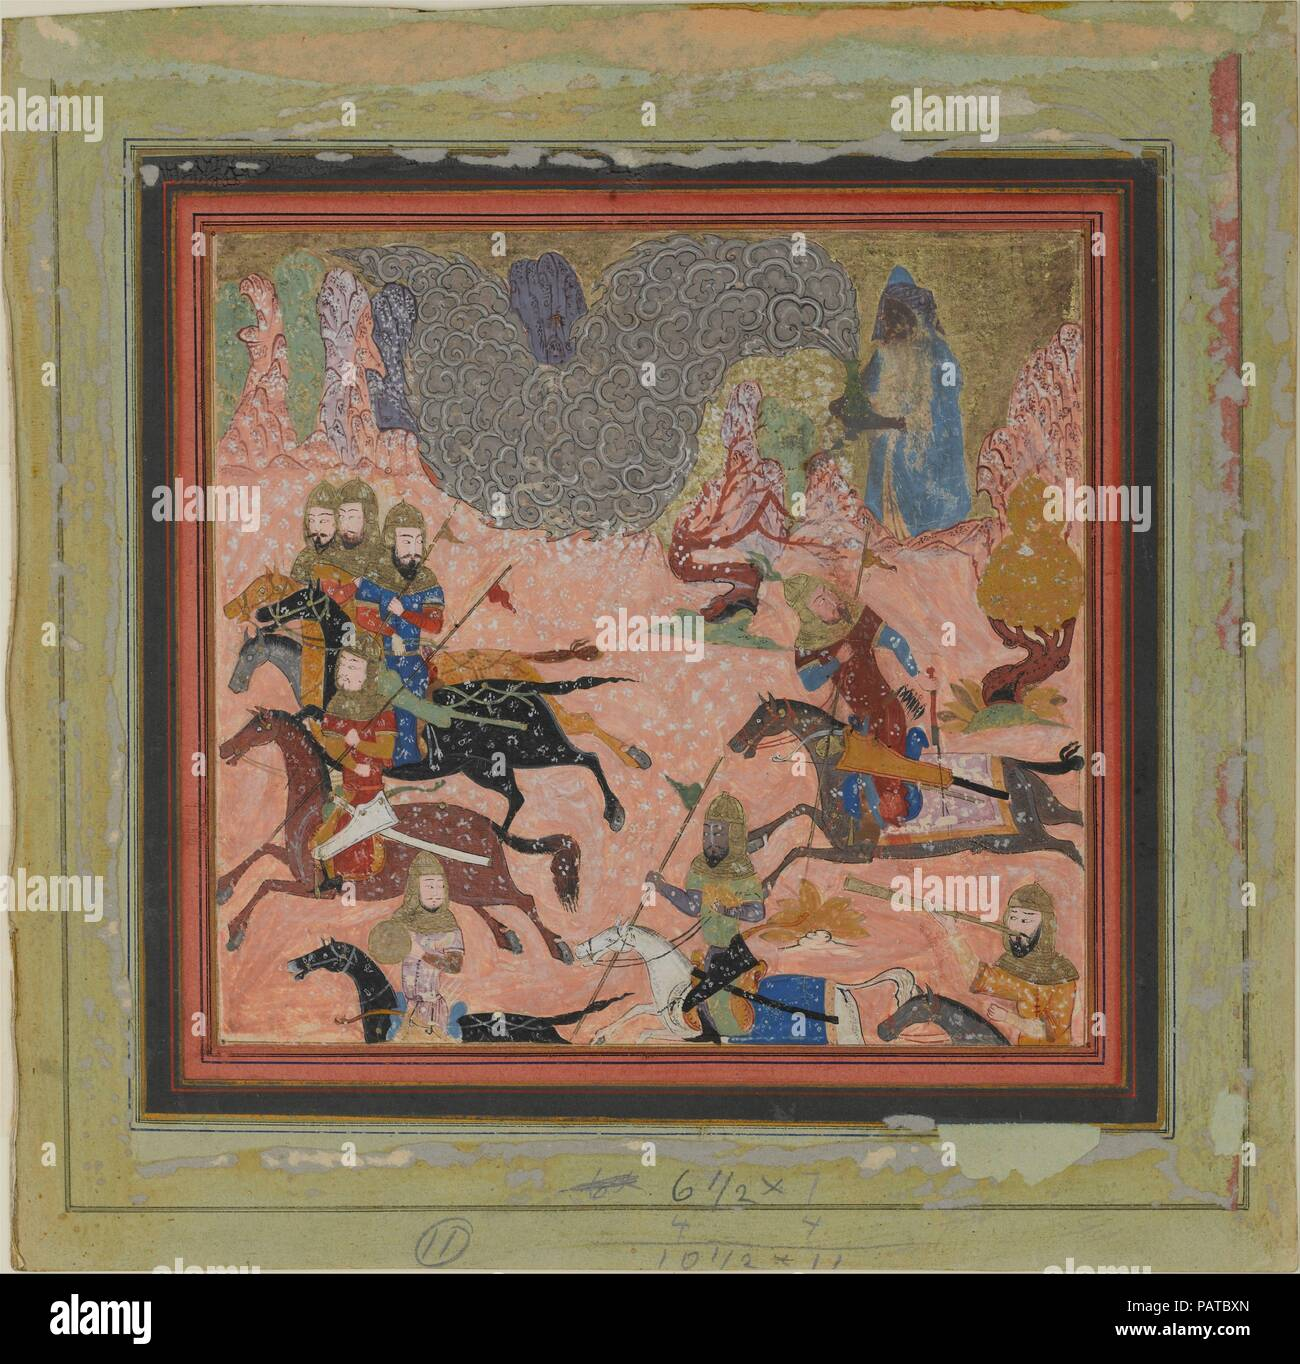 'Bazur, the Magician, Raises up Darkness and a Storm', Folio from a Shahnama (Book of Kings). Author: Abu'l Qasim Firdausi (935-1020). Dimensions: 7.75 in. high 8.12 in. wide (19.7 cm high 20.6 cm wide). Date: ca. 1430-40.  During a battle between the Iranians and the Turanians, a sorcerer named Bazur (shown here in a blue cape) climbs to the top of a mountain and creates a blizzard that engulfs the Iranian forces. In the ensuing confusion, the Turanians attack, causing heavy casualties.  This painting comes from a copy of the highly Persianate Shahnama that was probably made in northern India - Stock Image